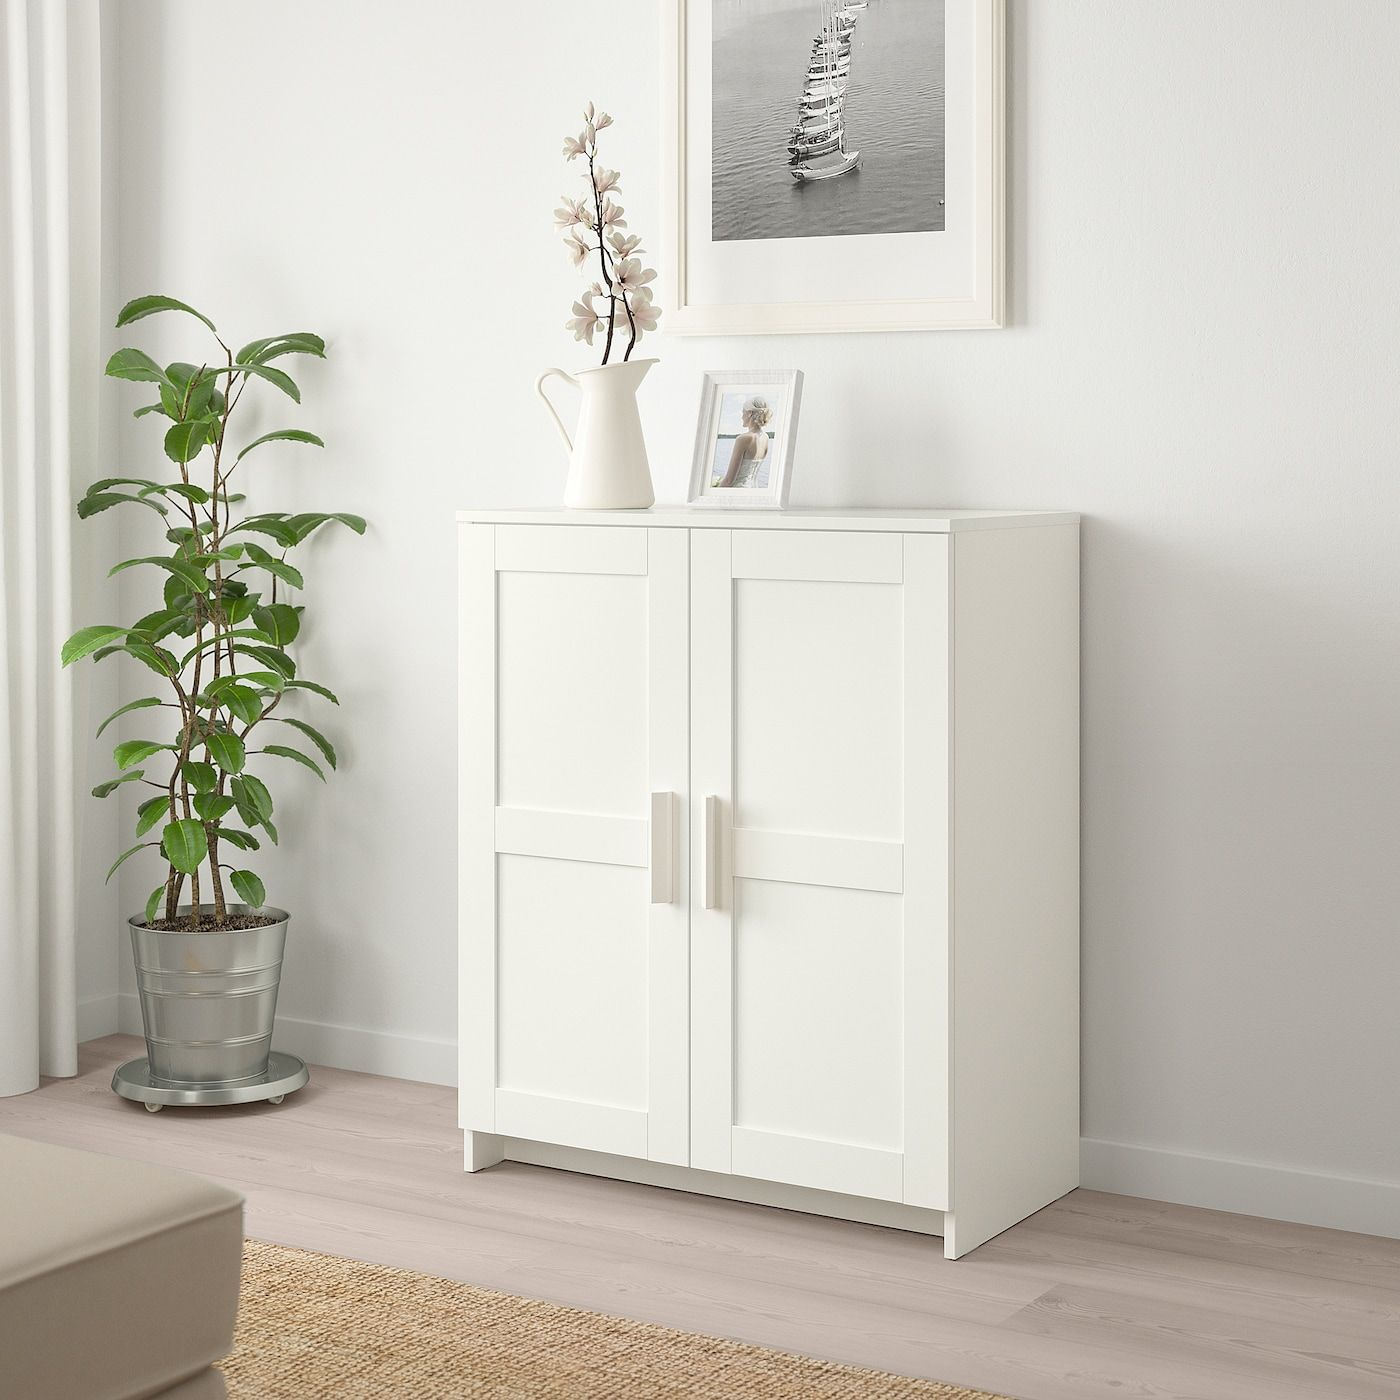 Brimnes Cabinet With Doors White 30 3 4x37 3 8 With Images